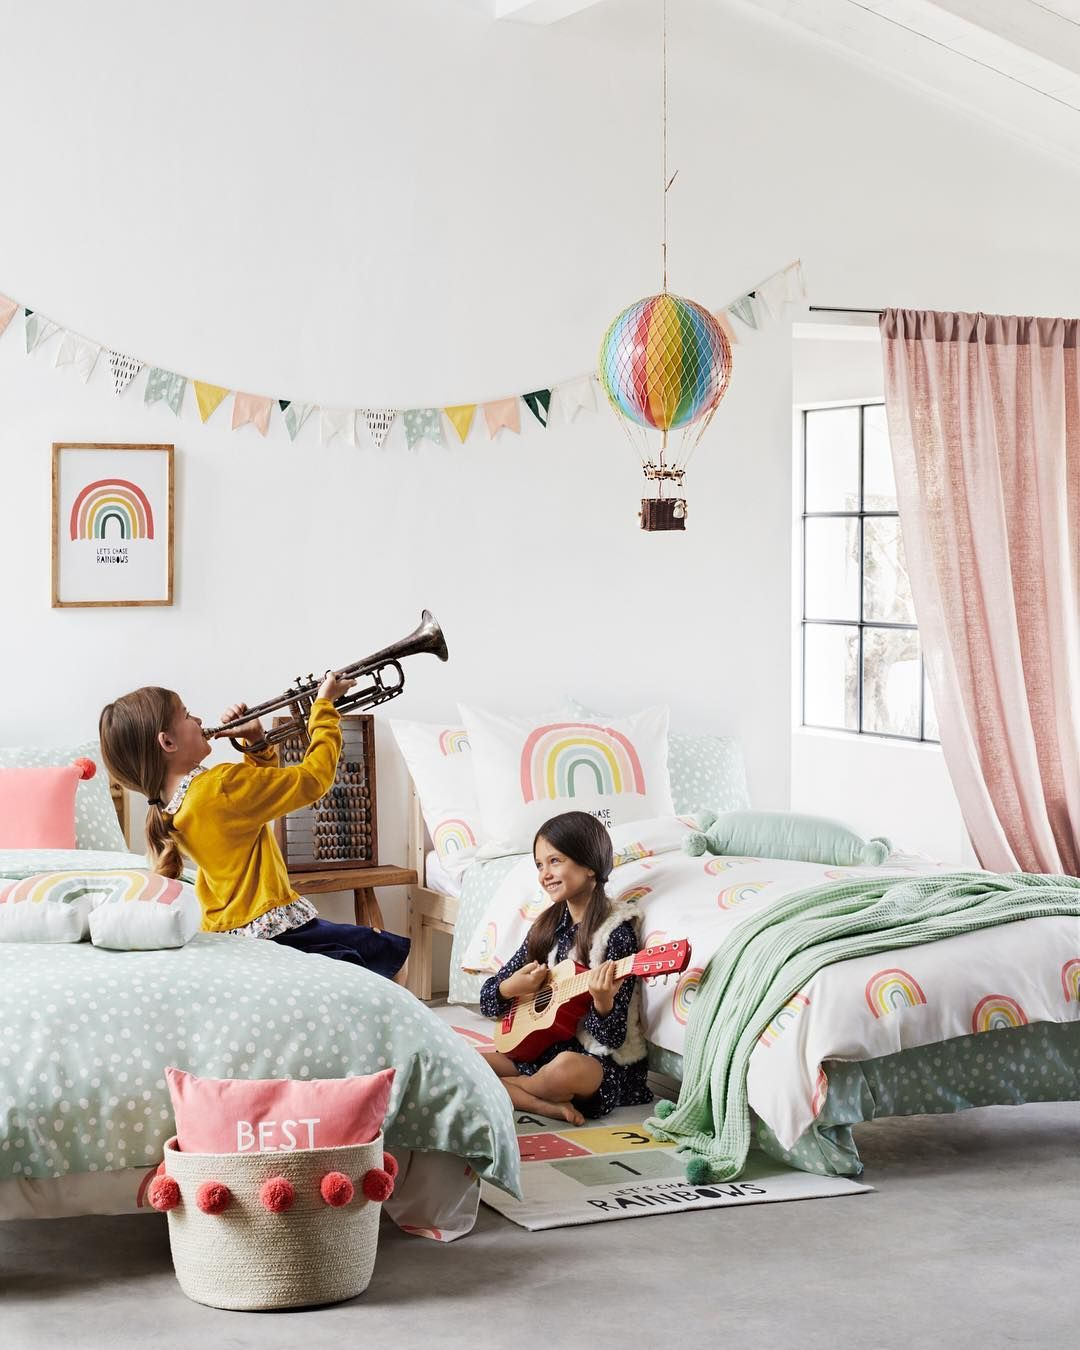 "H&M Home on Instagram: ""The best way to add colour to your kids' room? Fill it with enchanting rainbows! 🌈 #HM… 